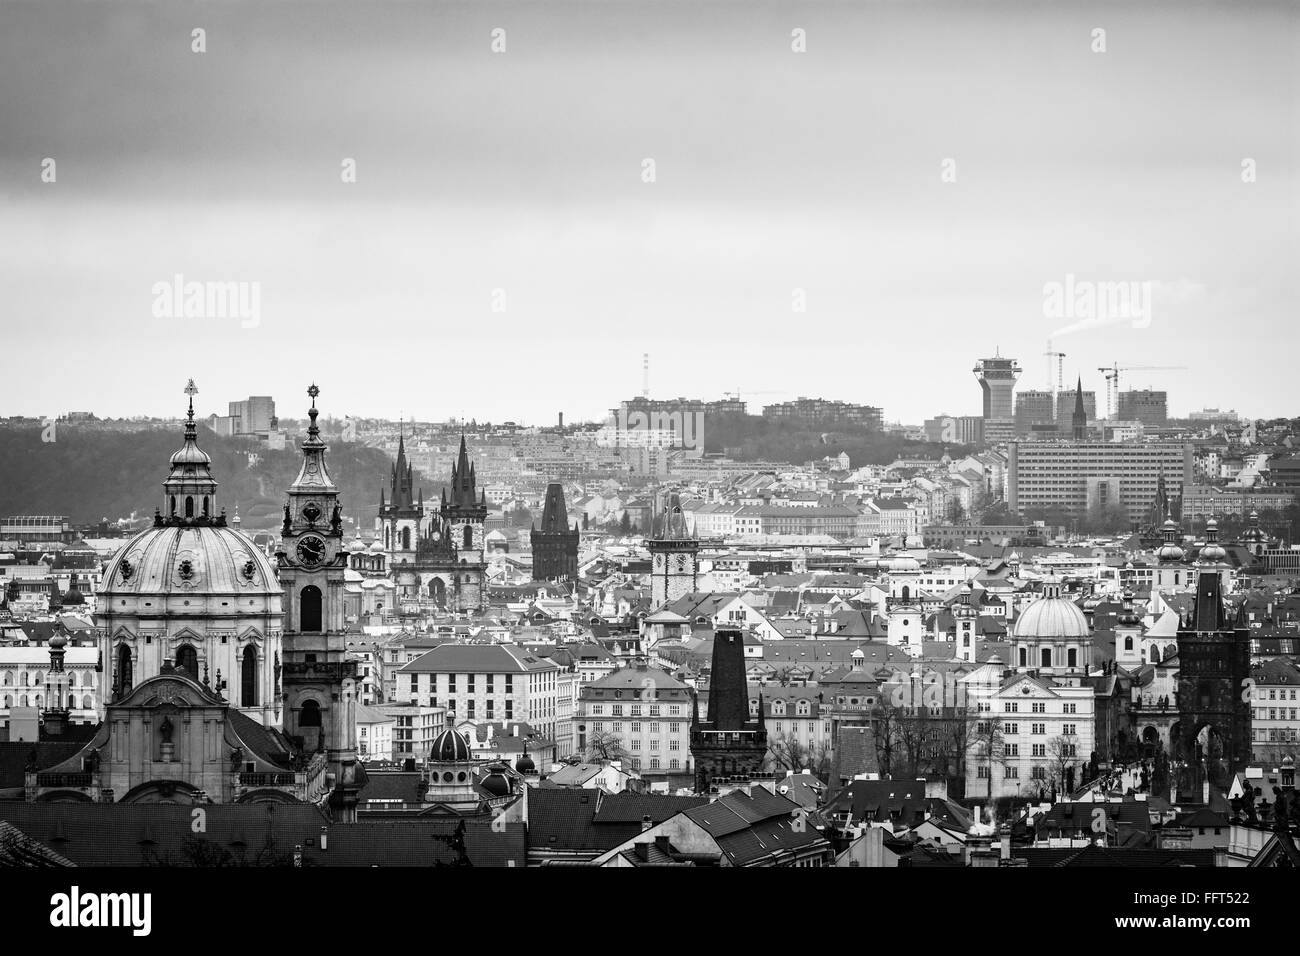 The Hundred spired Prague - The City of a Hundred Spires, if we look around from one of the look-out spots we can - Stock Image